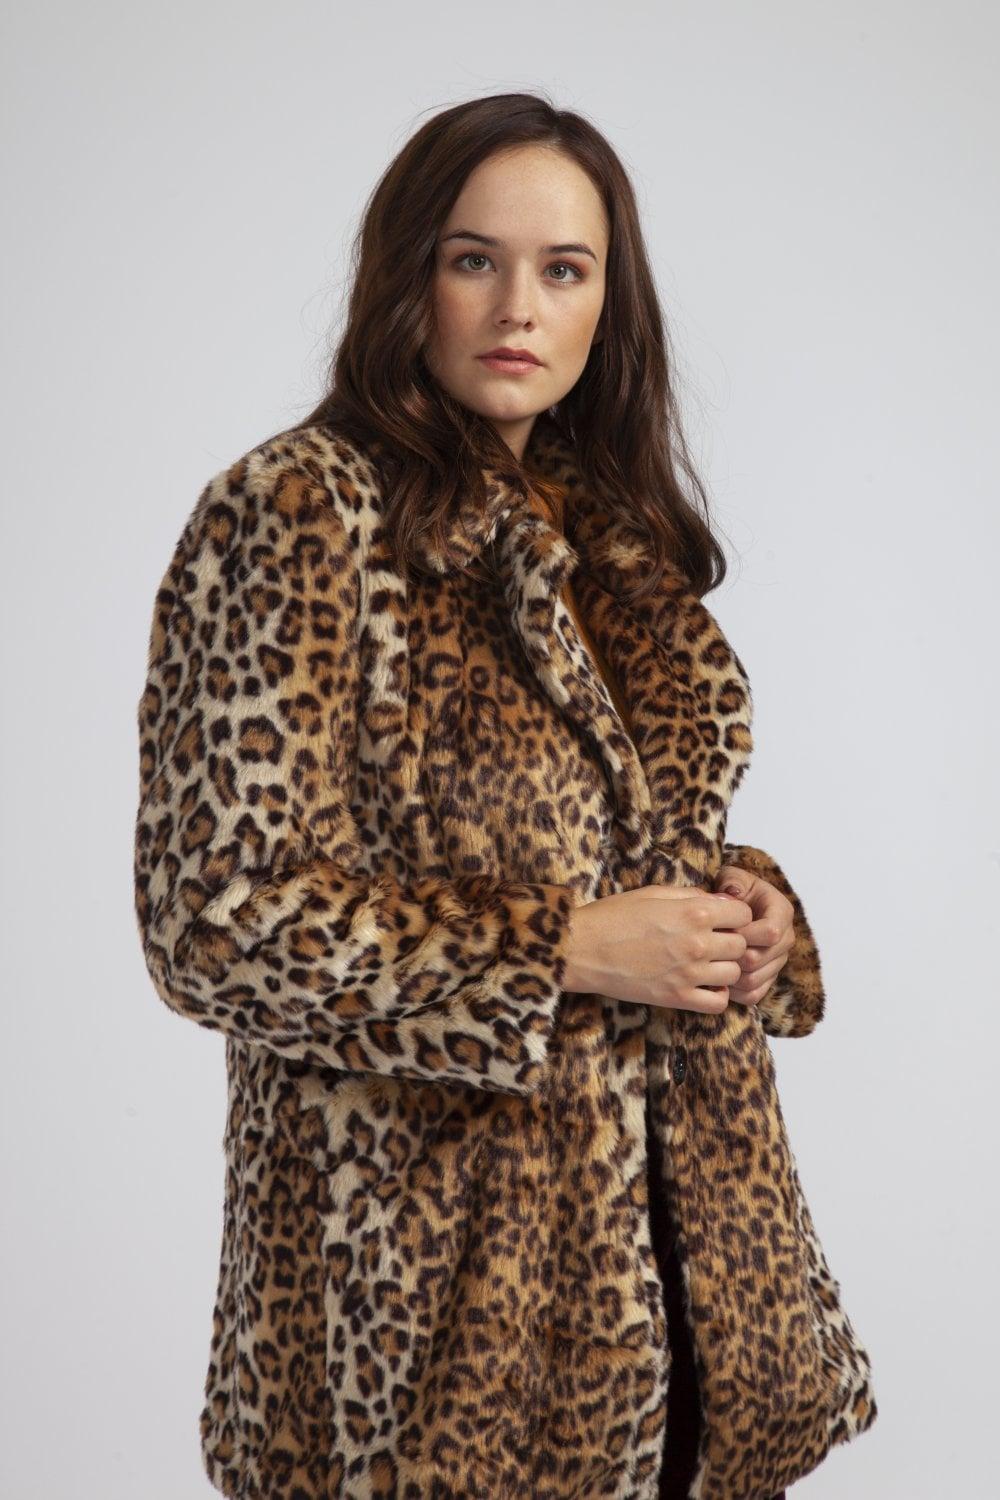 55fb1b55c58 JAYLEY Leopard Print Faux Fur Coat - Womenswear from JAYLEY UK